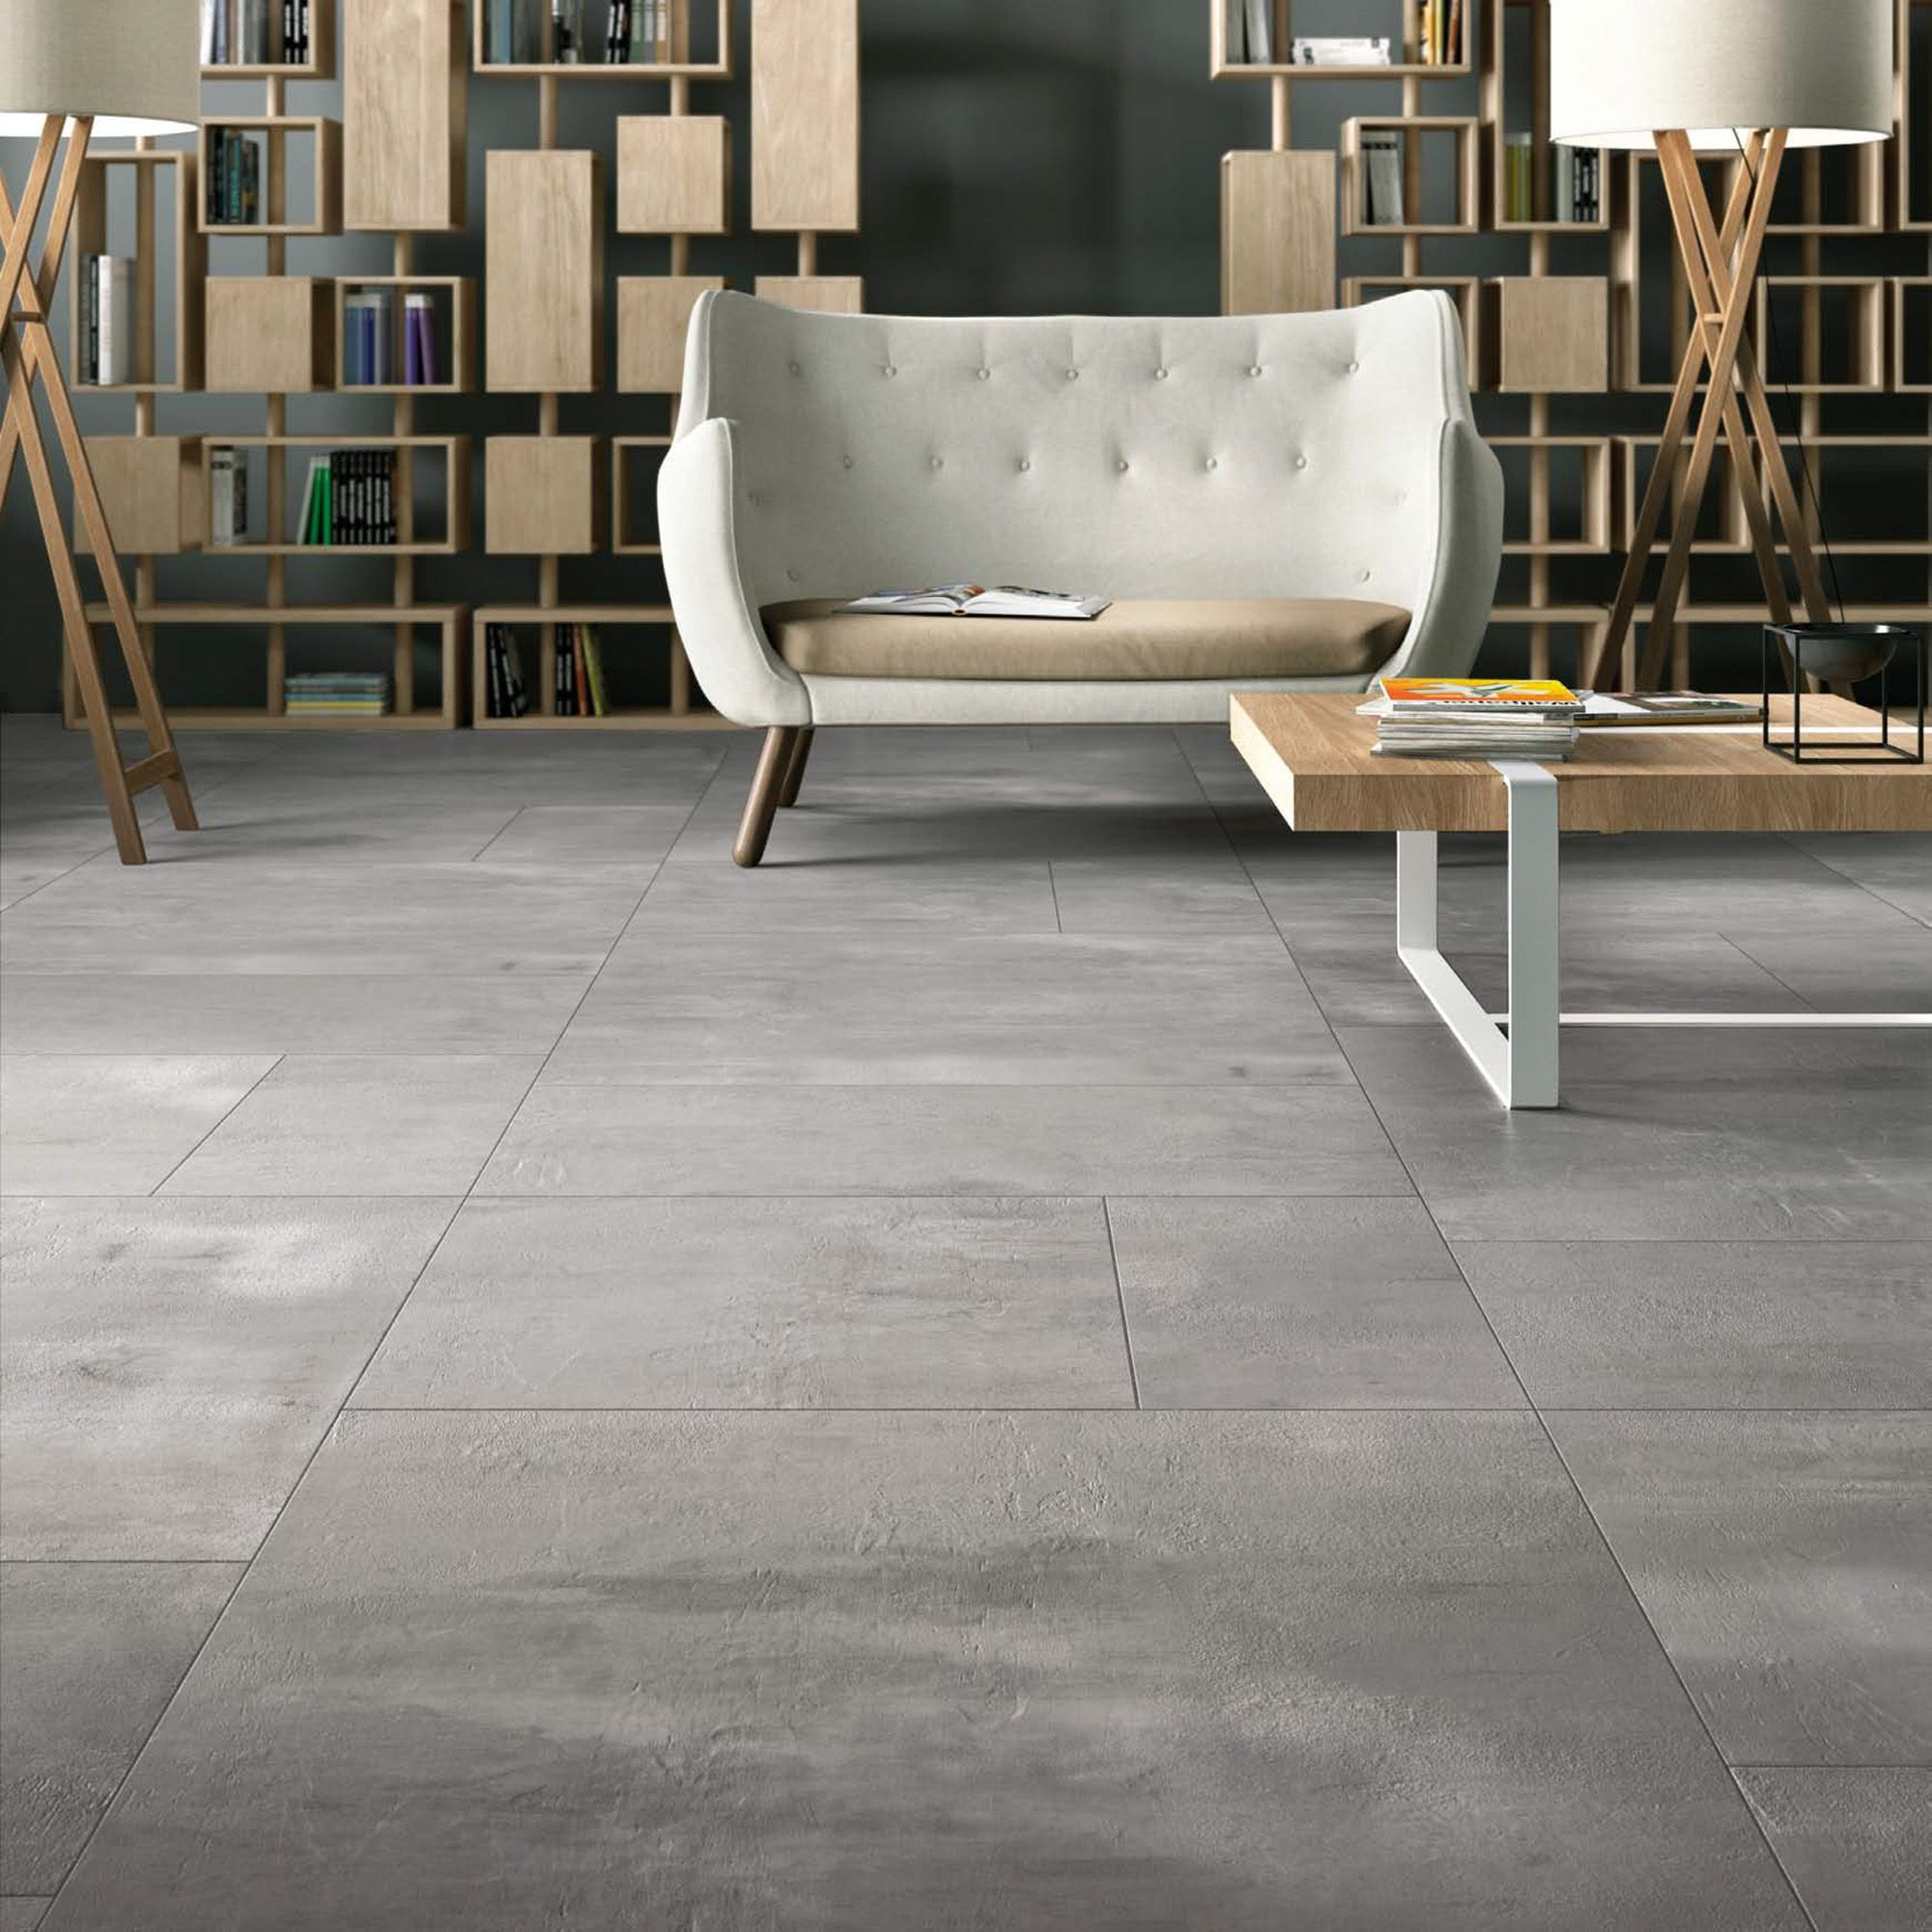 Urban Cement Grey Stone Effect Ceramic Wall Floor Tile: Italian Full Body Porcelain Tile